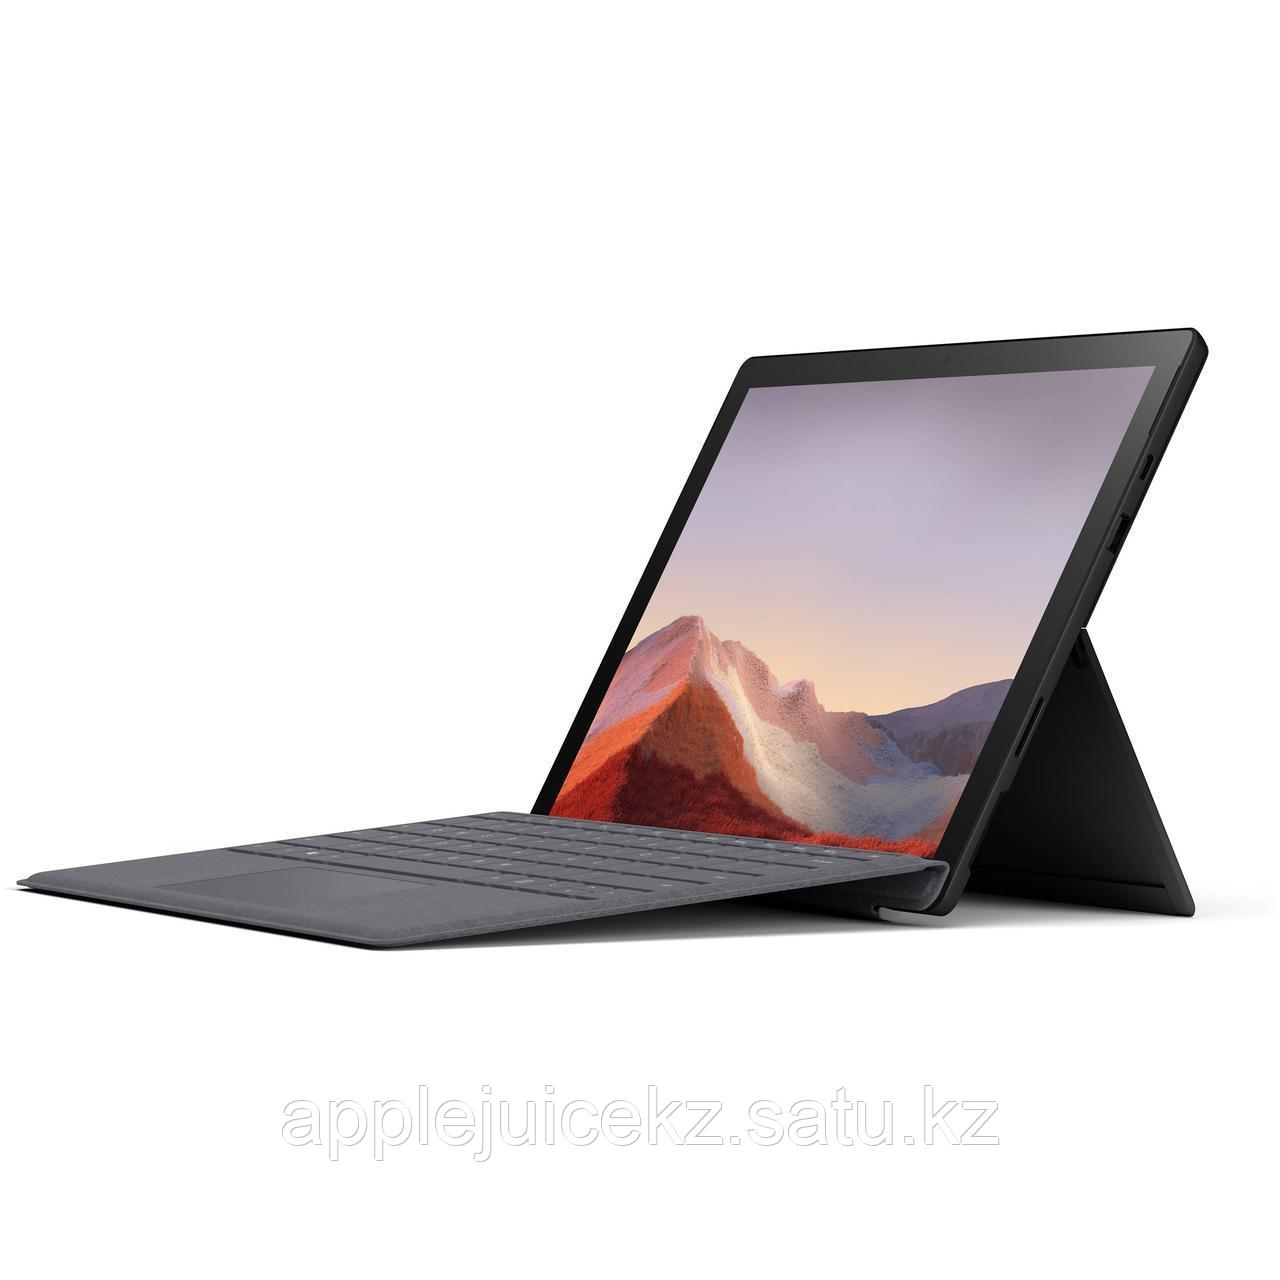 Surface Pro 7 Black, Intel Core i7, 16GB, 512GB